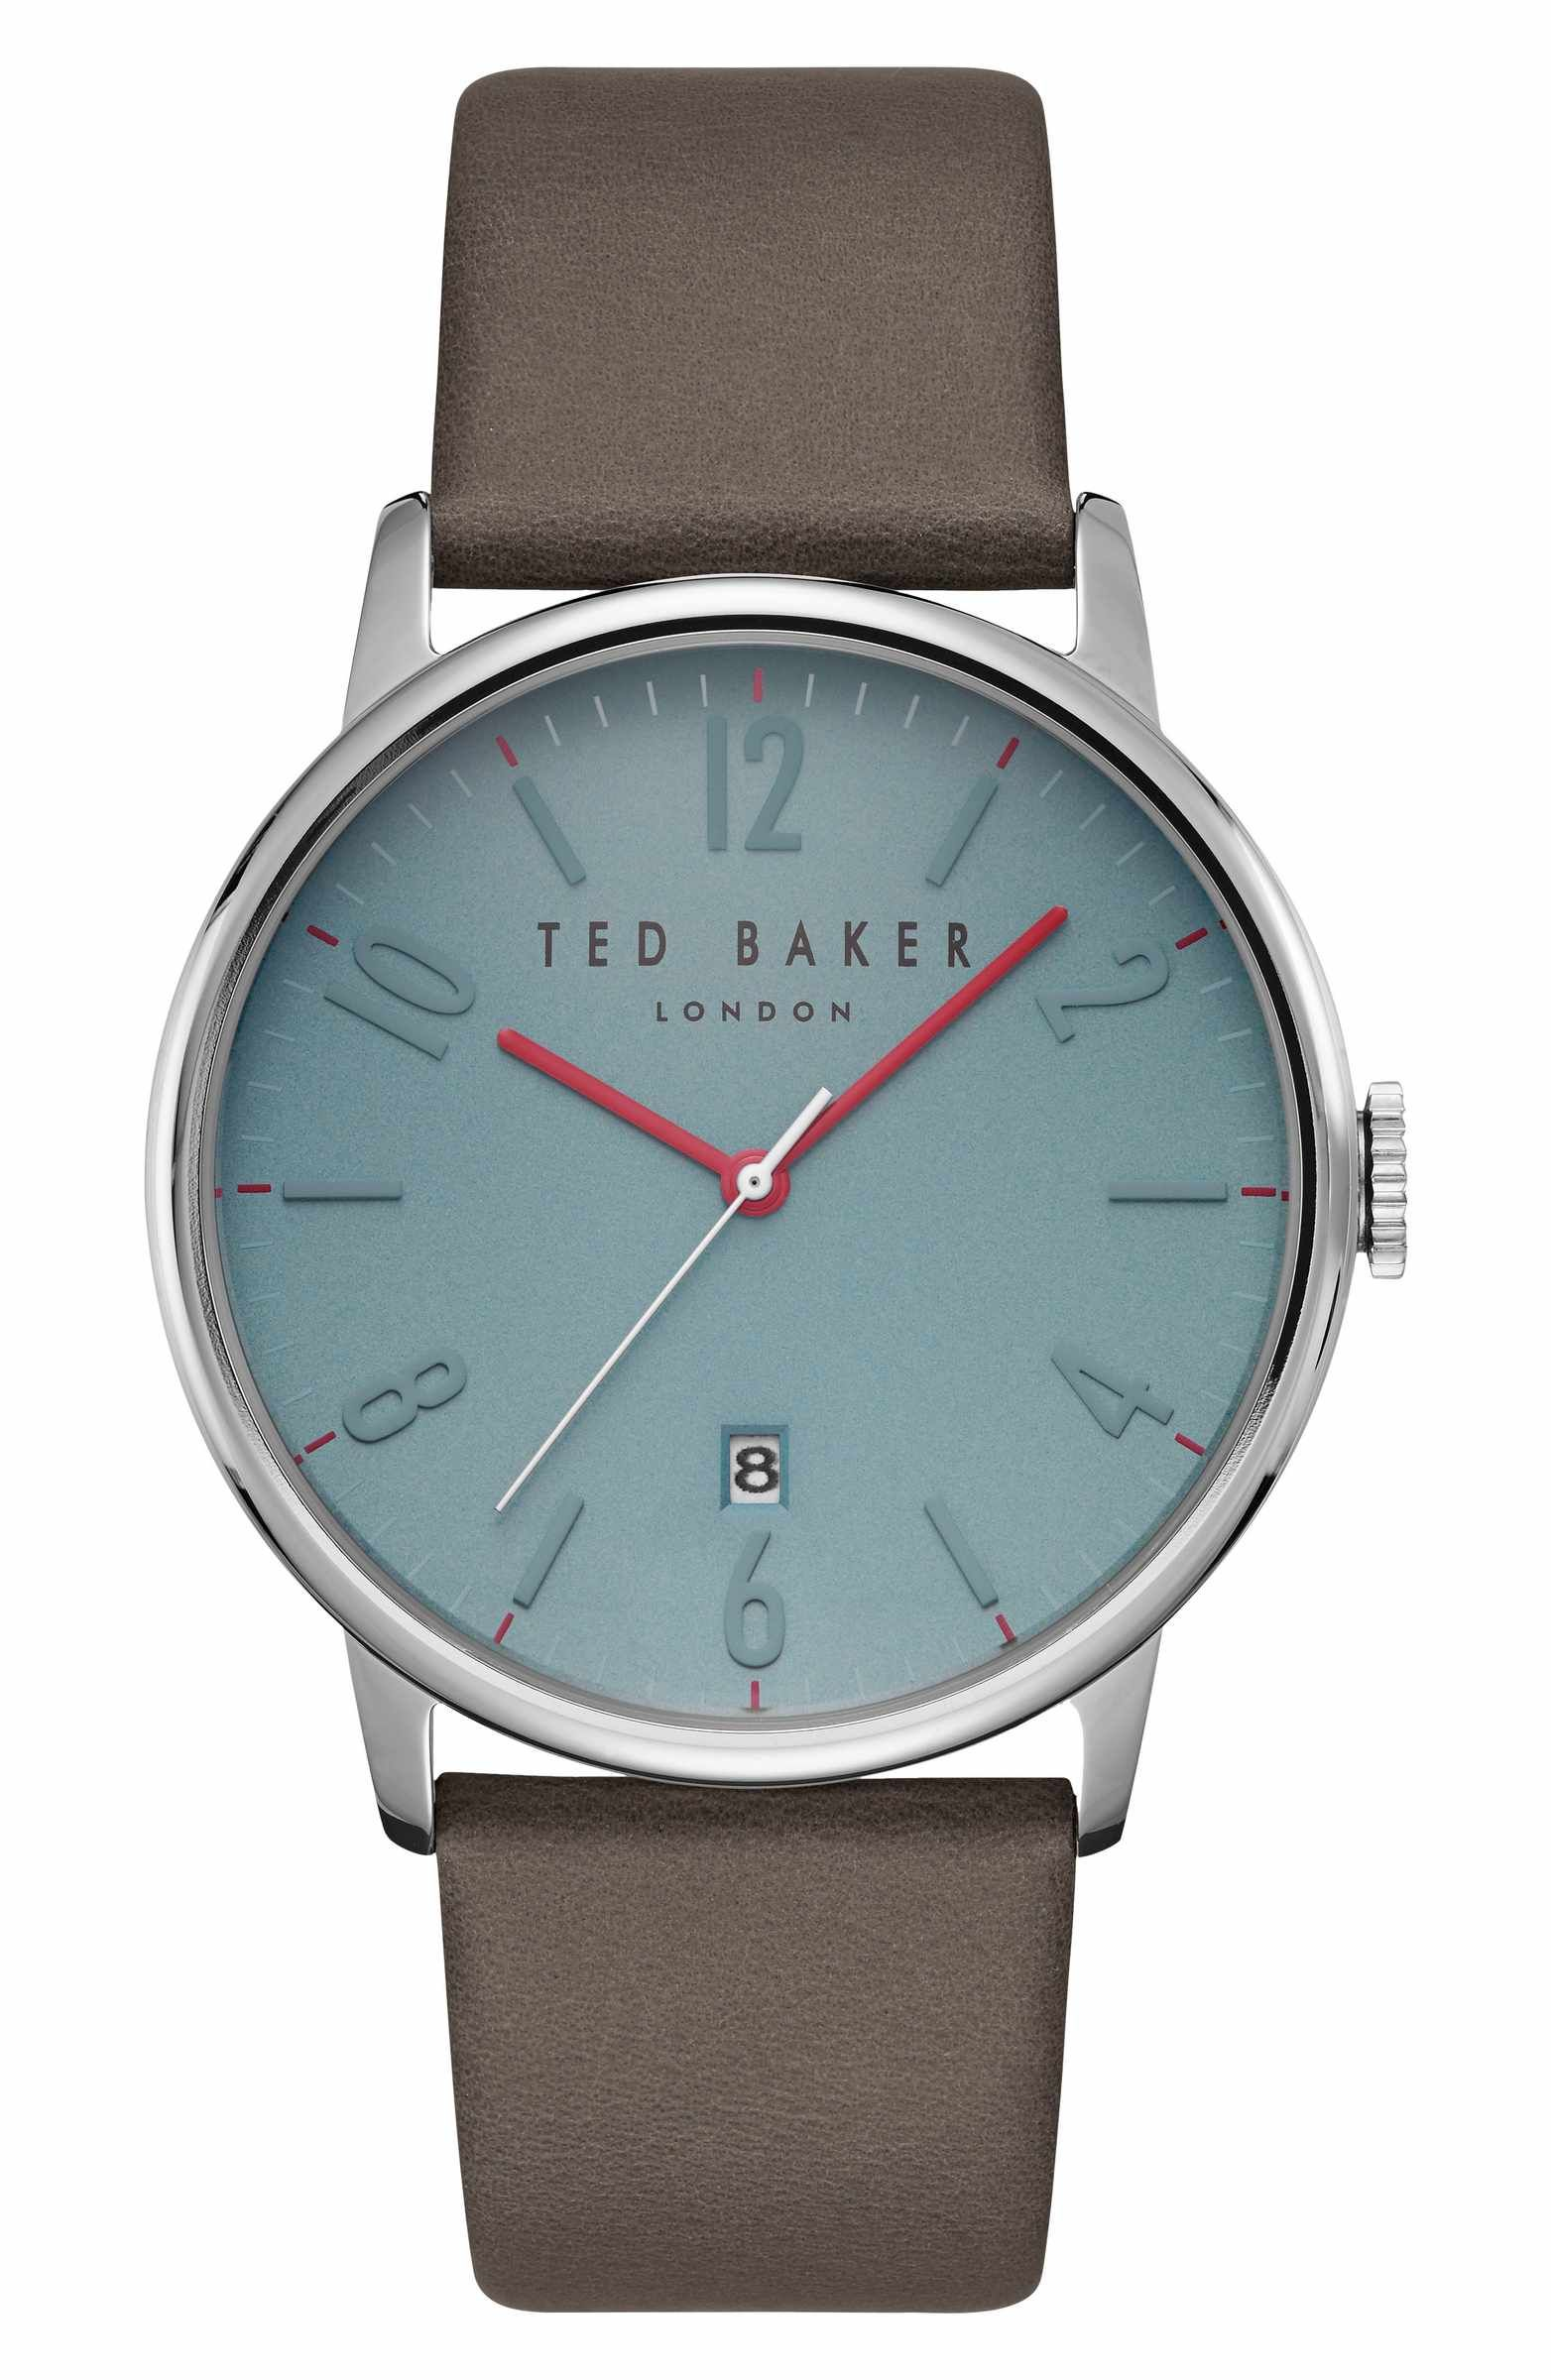 4258c7b95 Main Image - Ted Baker London Thomas Leather Strap Watch